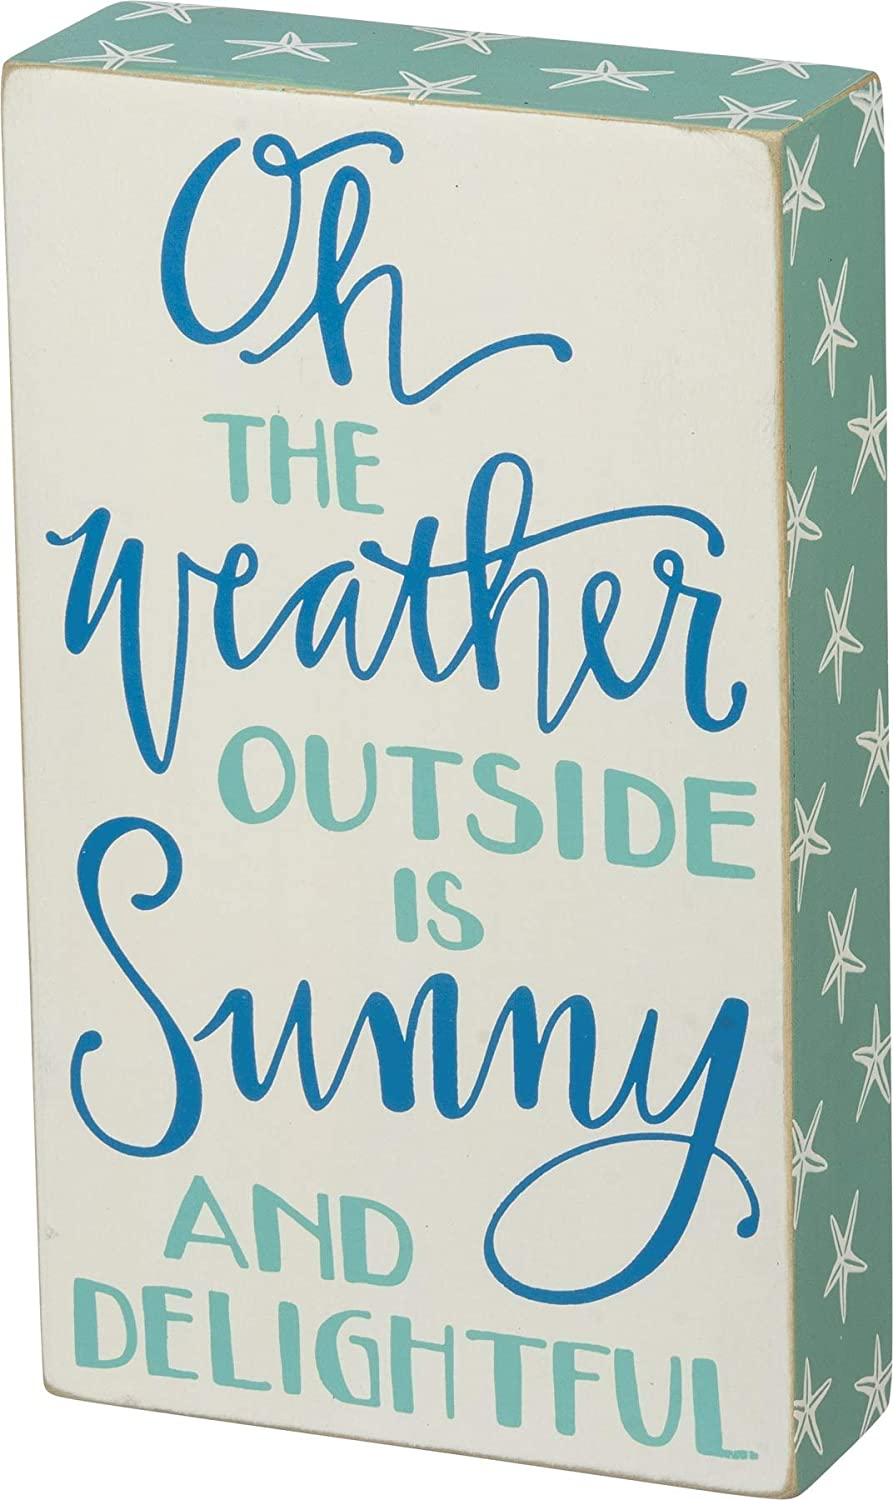 Primitives by Kathy - Weather Outside Box Sign - 5 inches x 8.50 inches